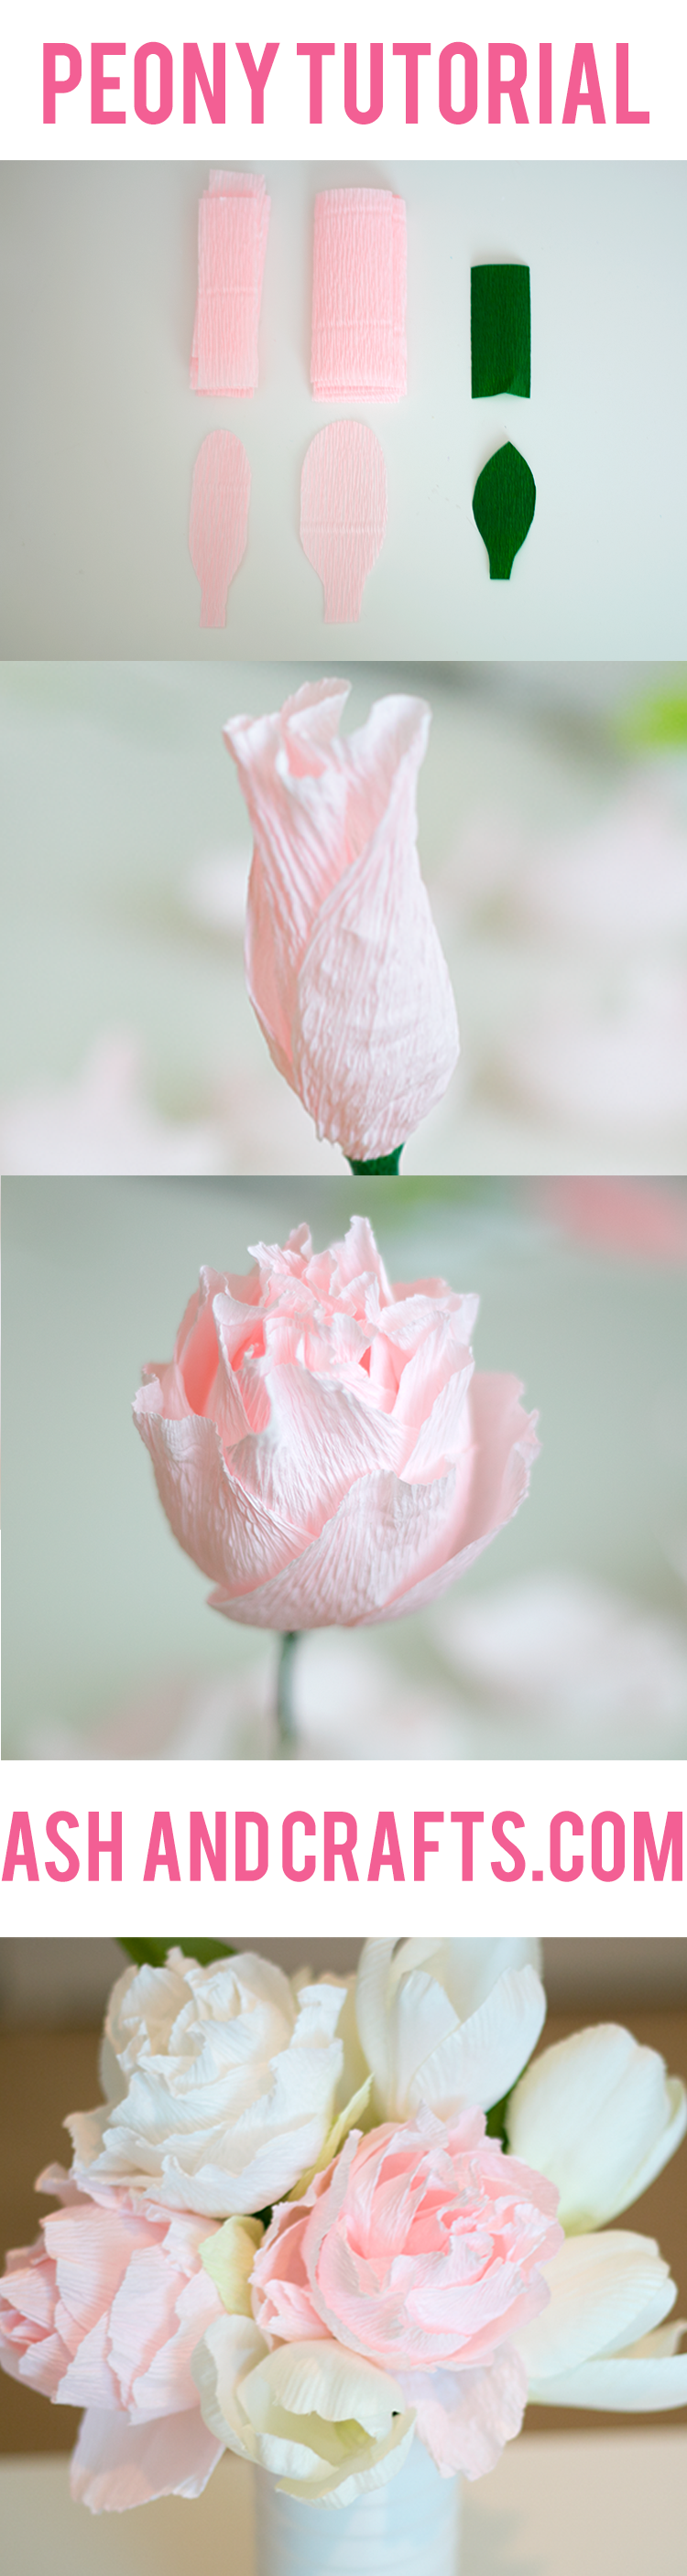 Paper peony tutorial ash and crafts mightylinksfo